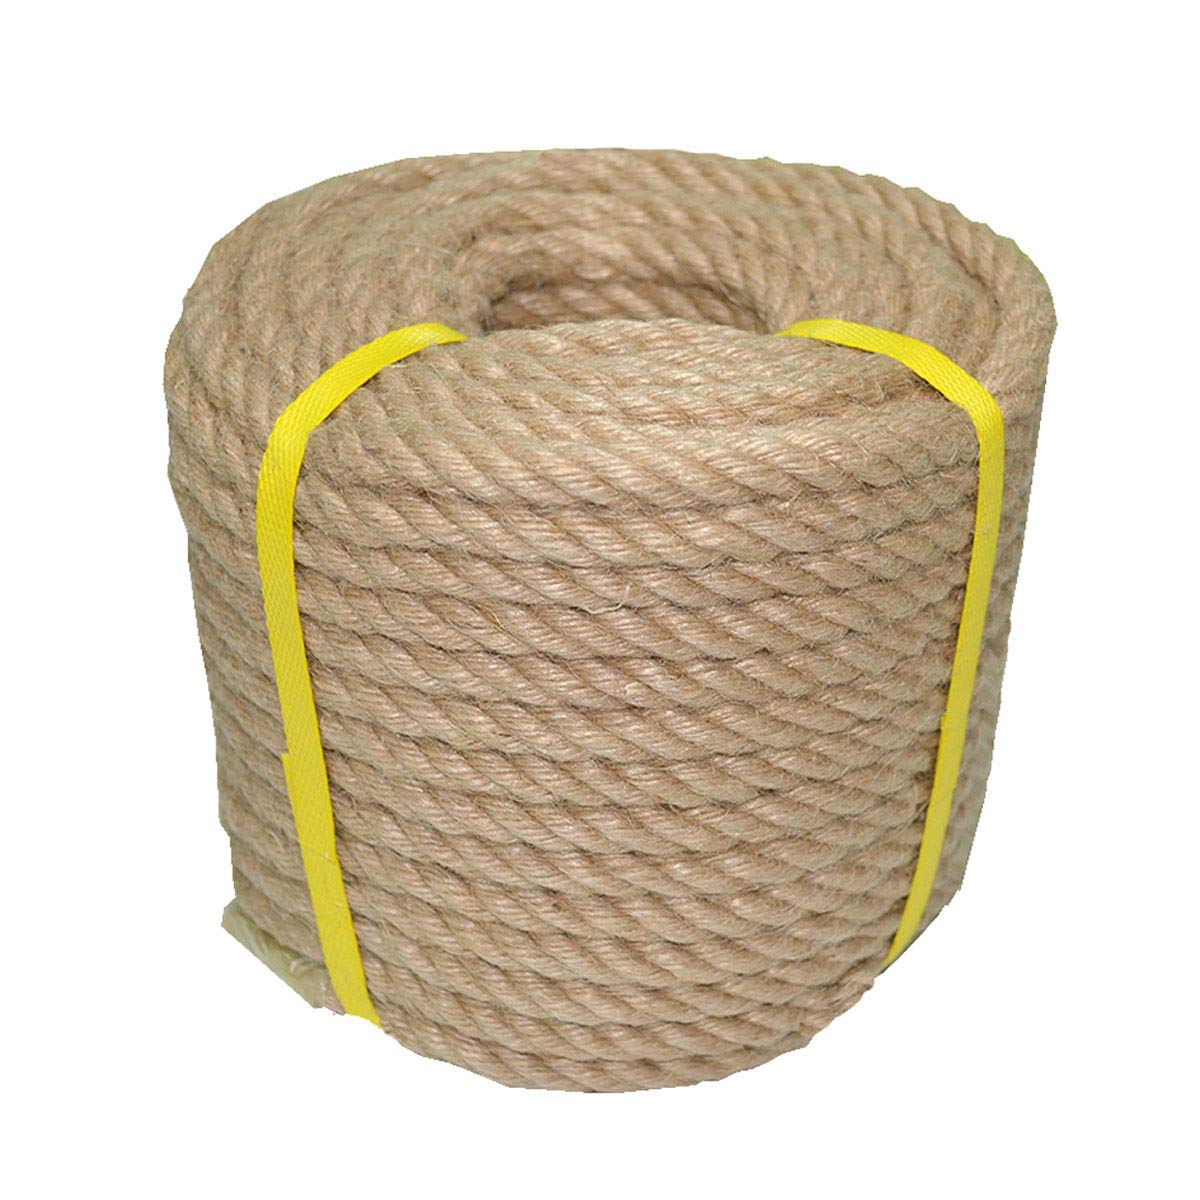 100% Natural Jute Rope Hemp Rope 50 Feet 1/2 Inch Strong Jute Twine for DIY Crafts Gardening Hammock Home Decorating by YuzeNet